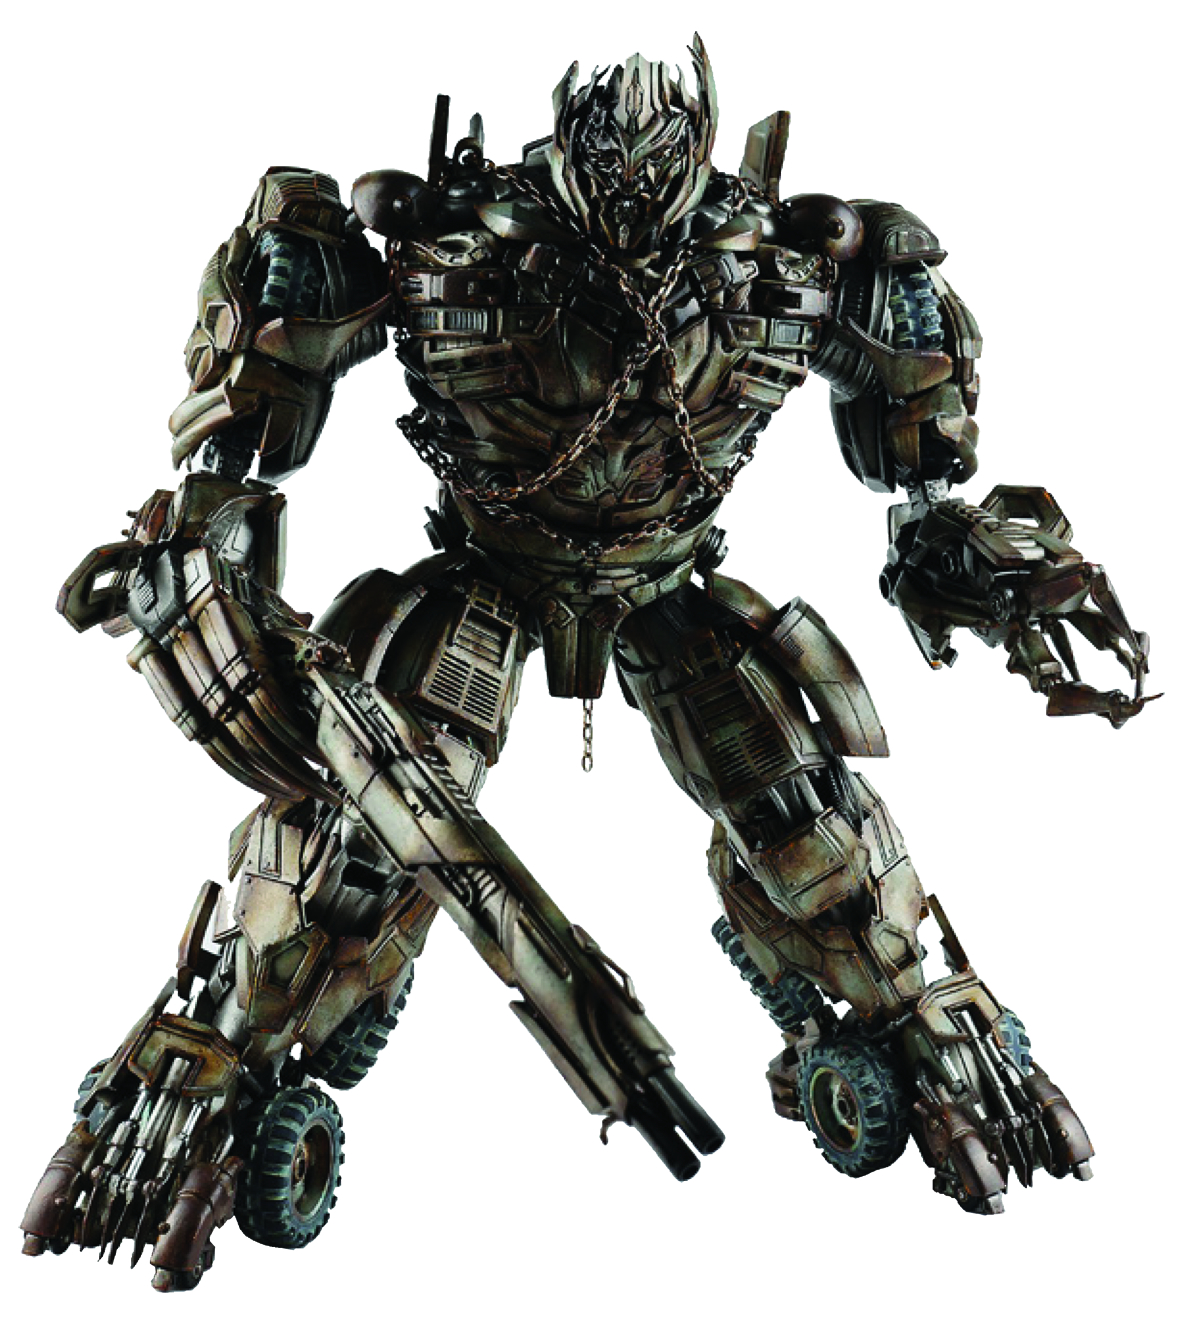 TRANSFORMERS MEGATRON PREMIUM SCALE COLLECTIBLE FIG